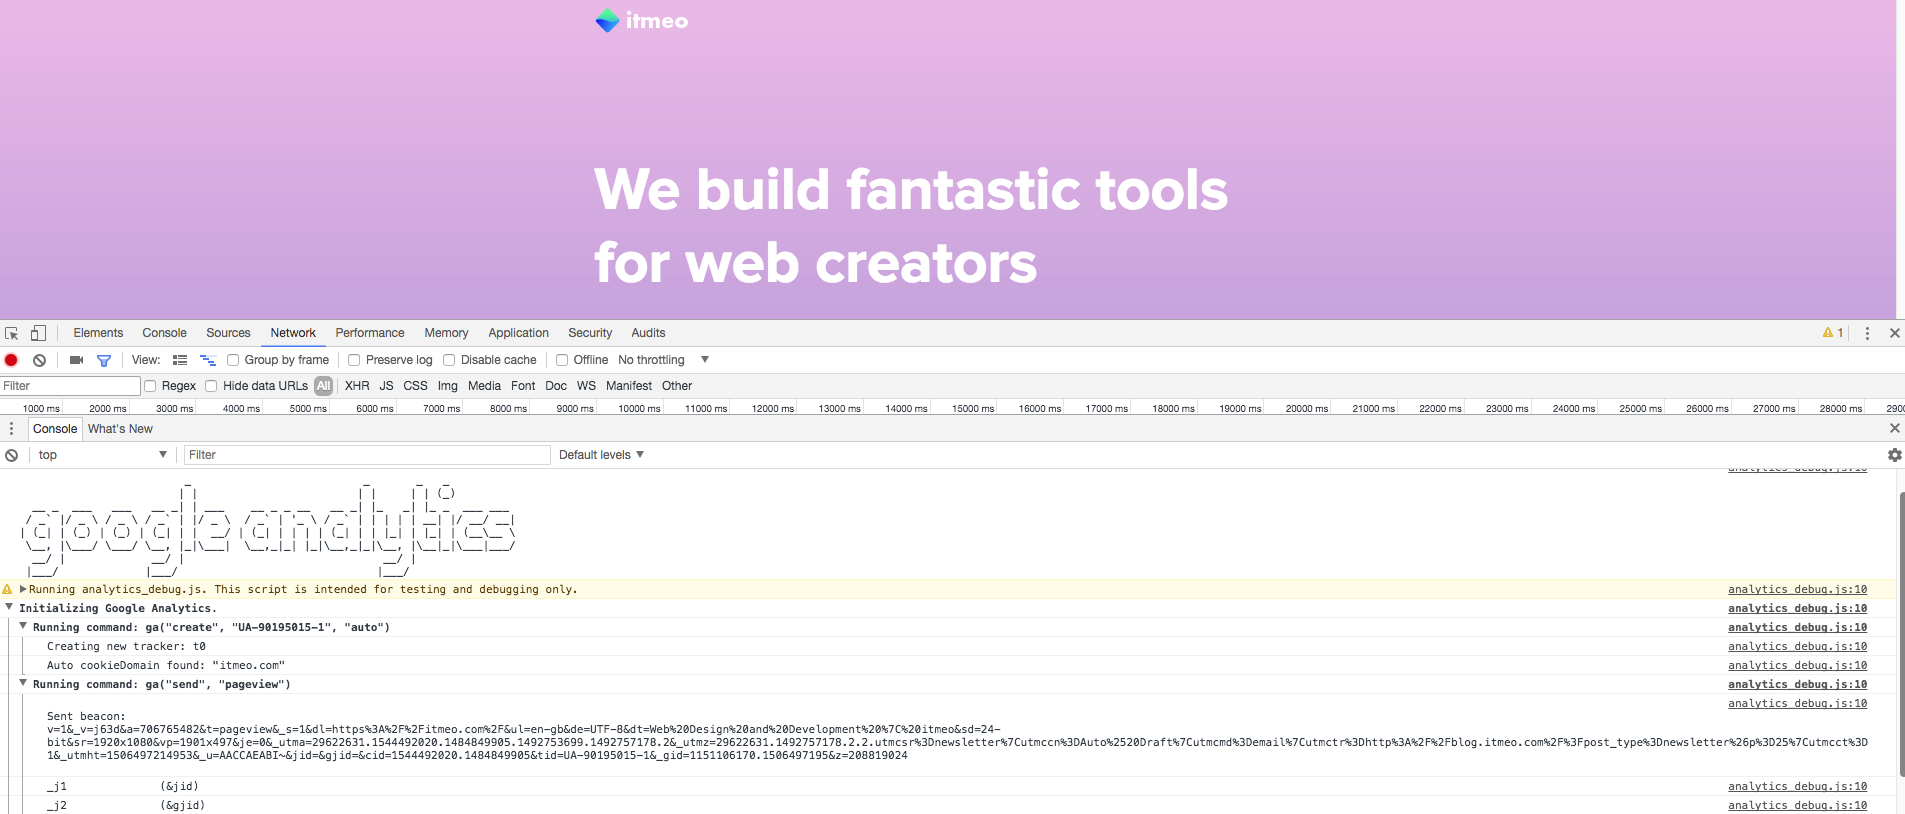 14 Hot Chrome Extensions for Geeks 🔥 - By Alexander Isora